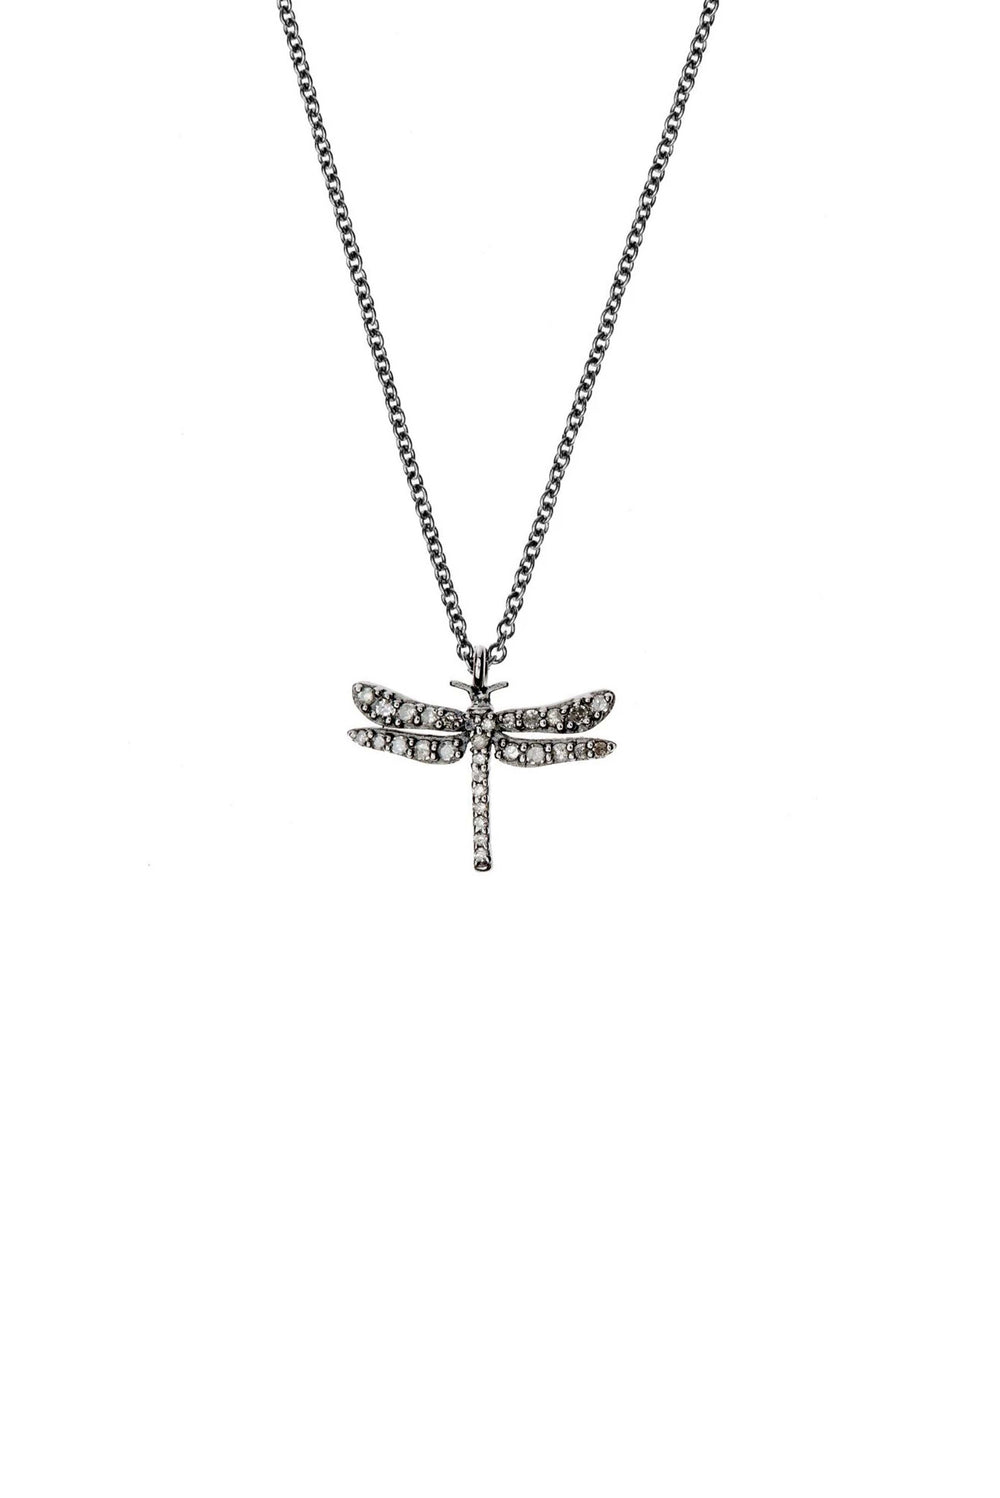 CBYC Dragonfly Necklace